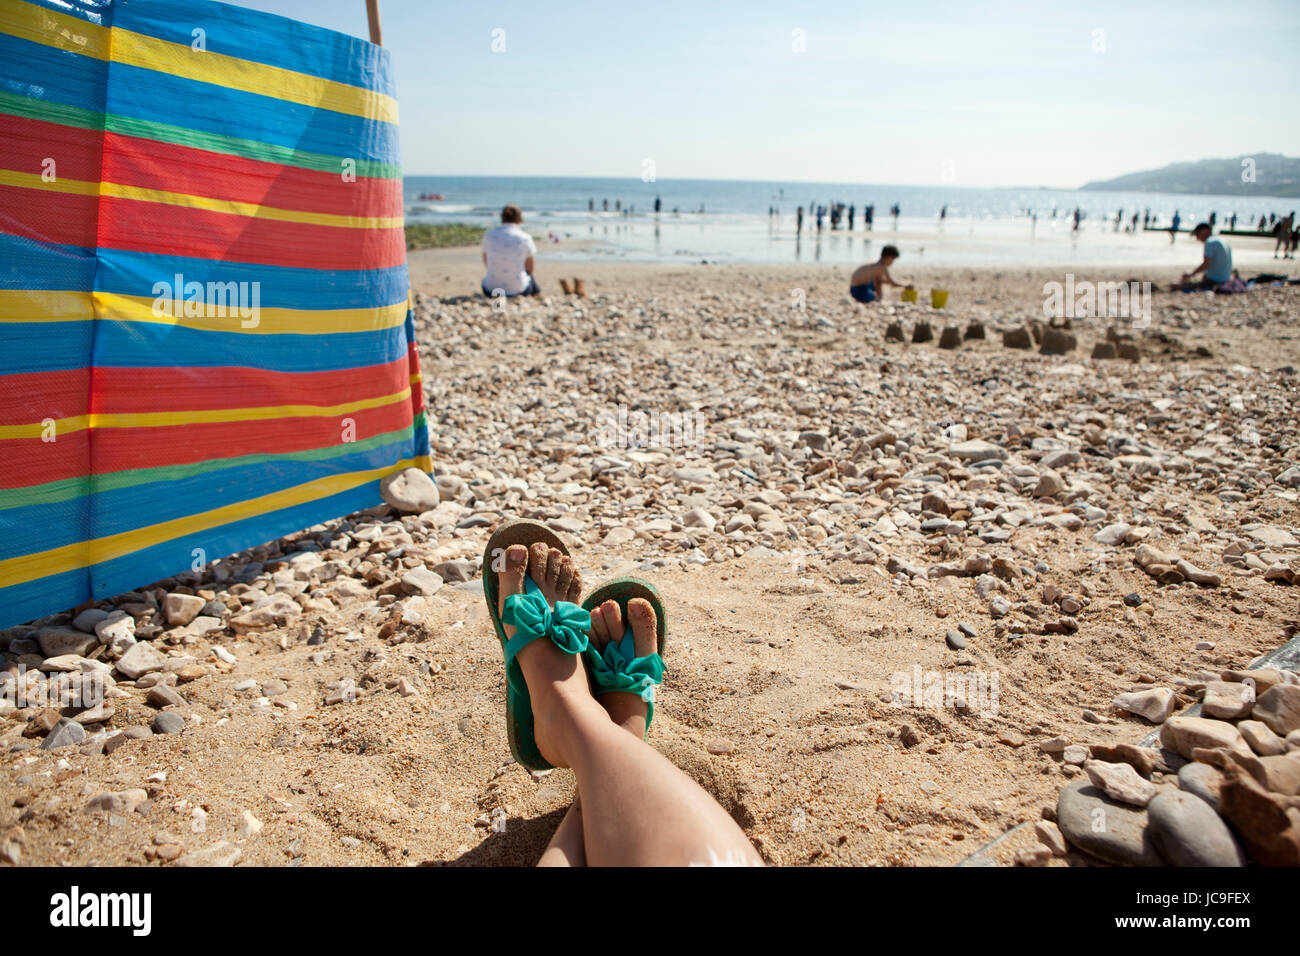 Charmouth plage Dorset, Angleterre, RU Photo Stock